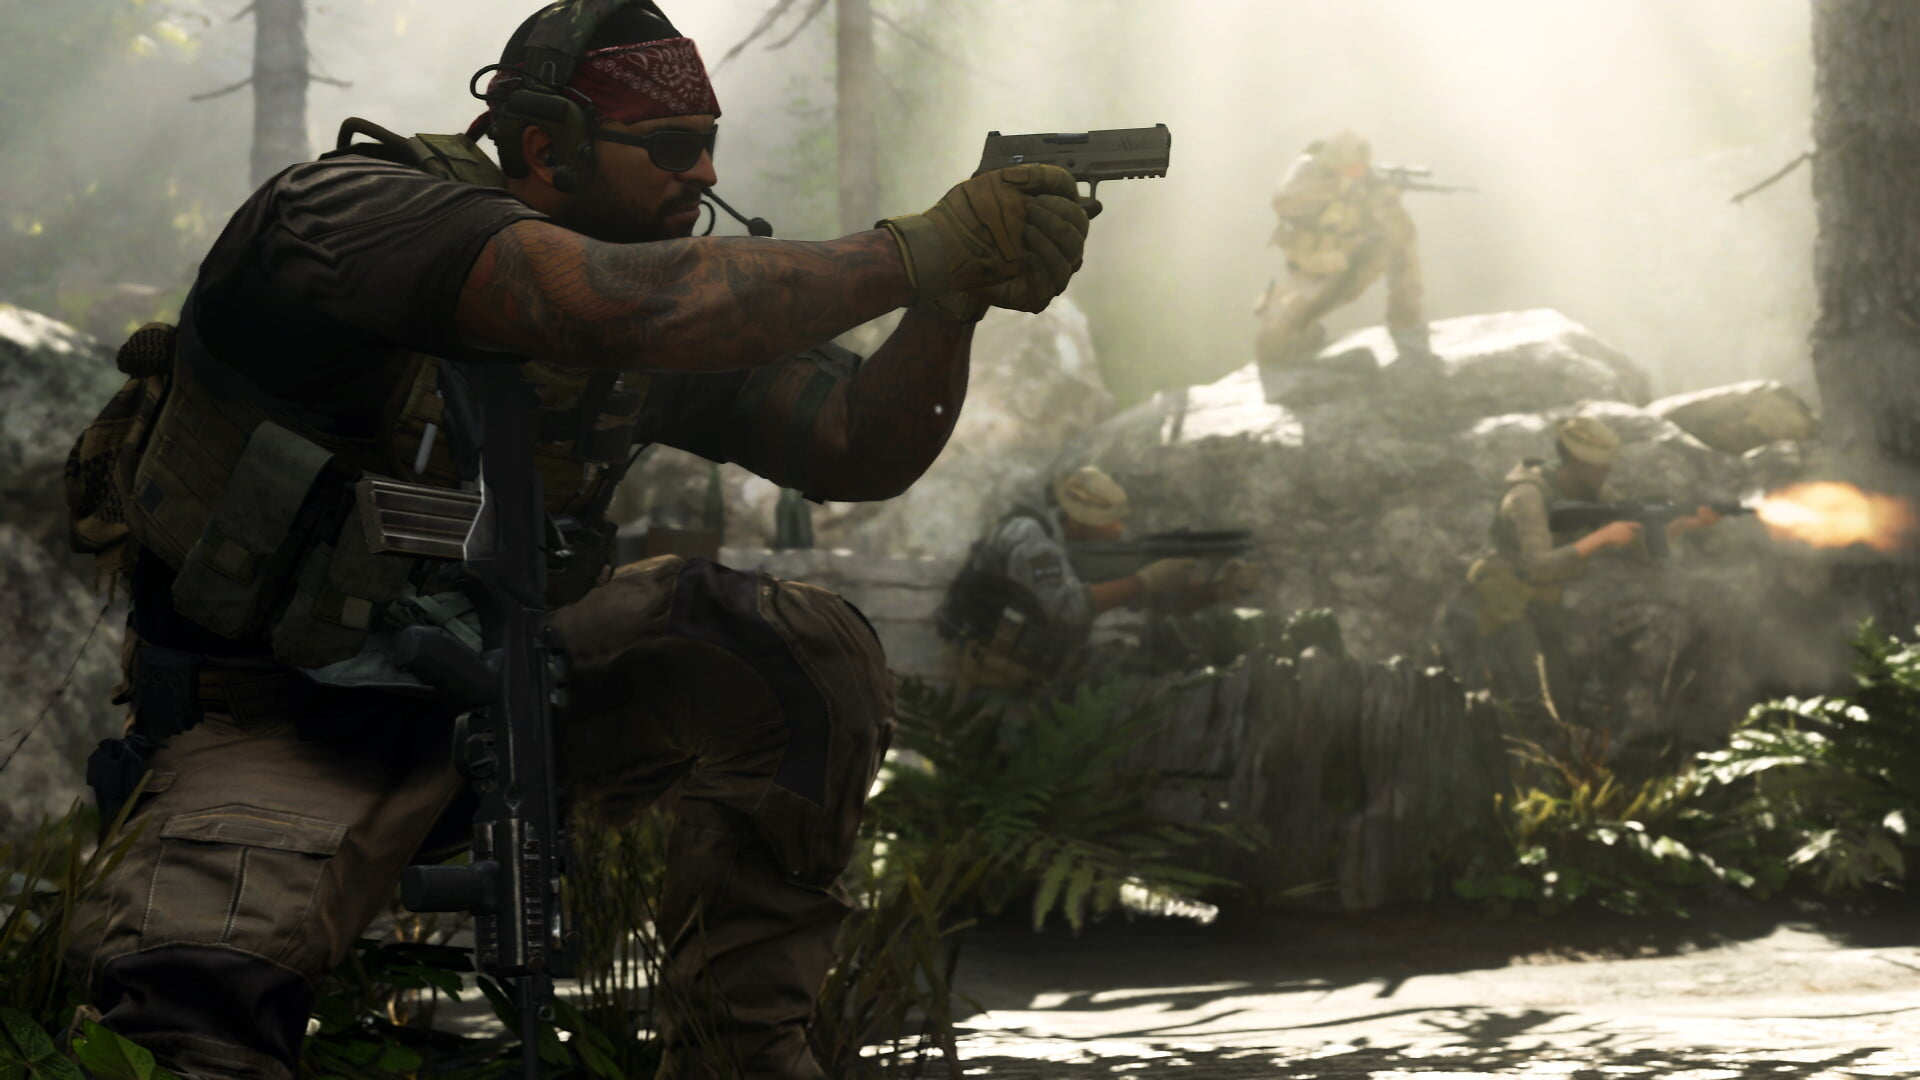 Activision Blizzard, Call of Duty: Black Ops 4, Шутеры, Call of Duty: Modern Warfare (2019), Battle.net, Activision, Steam, Epic Games Store, Call of Duty, Xbox One, Sony Interactive Entertainment, PlayStation 4